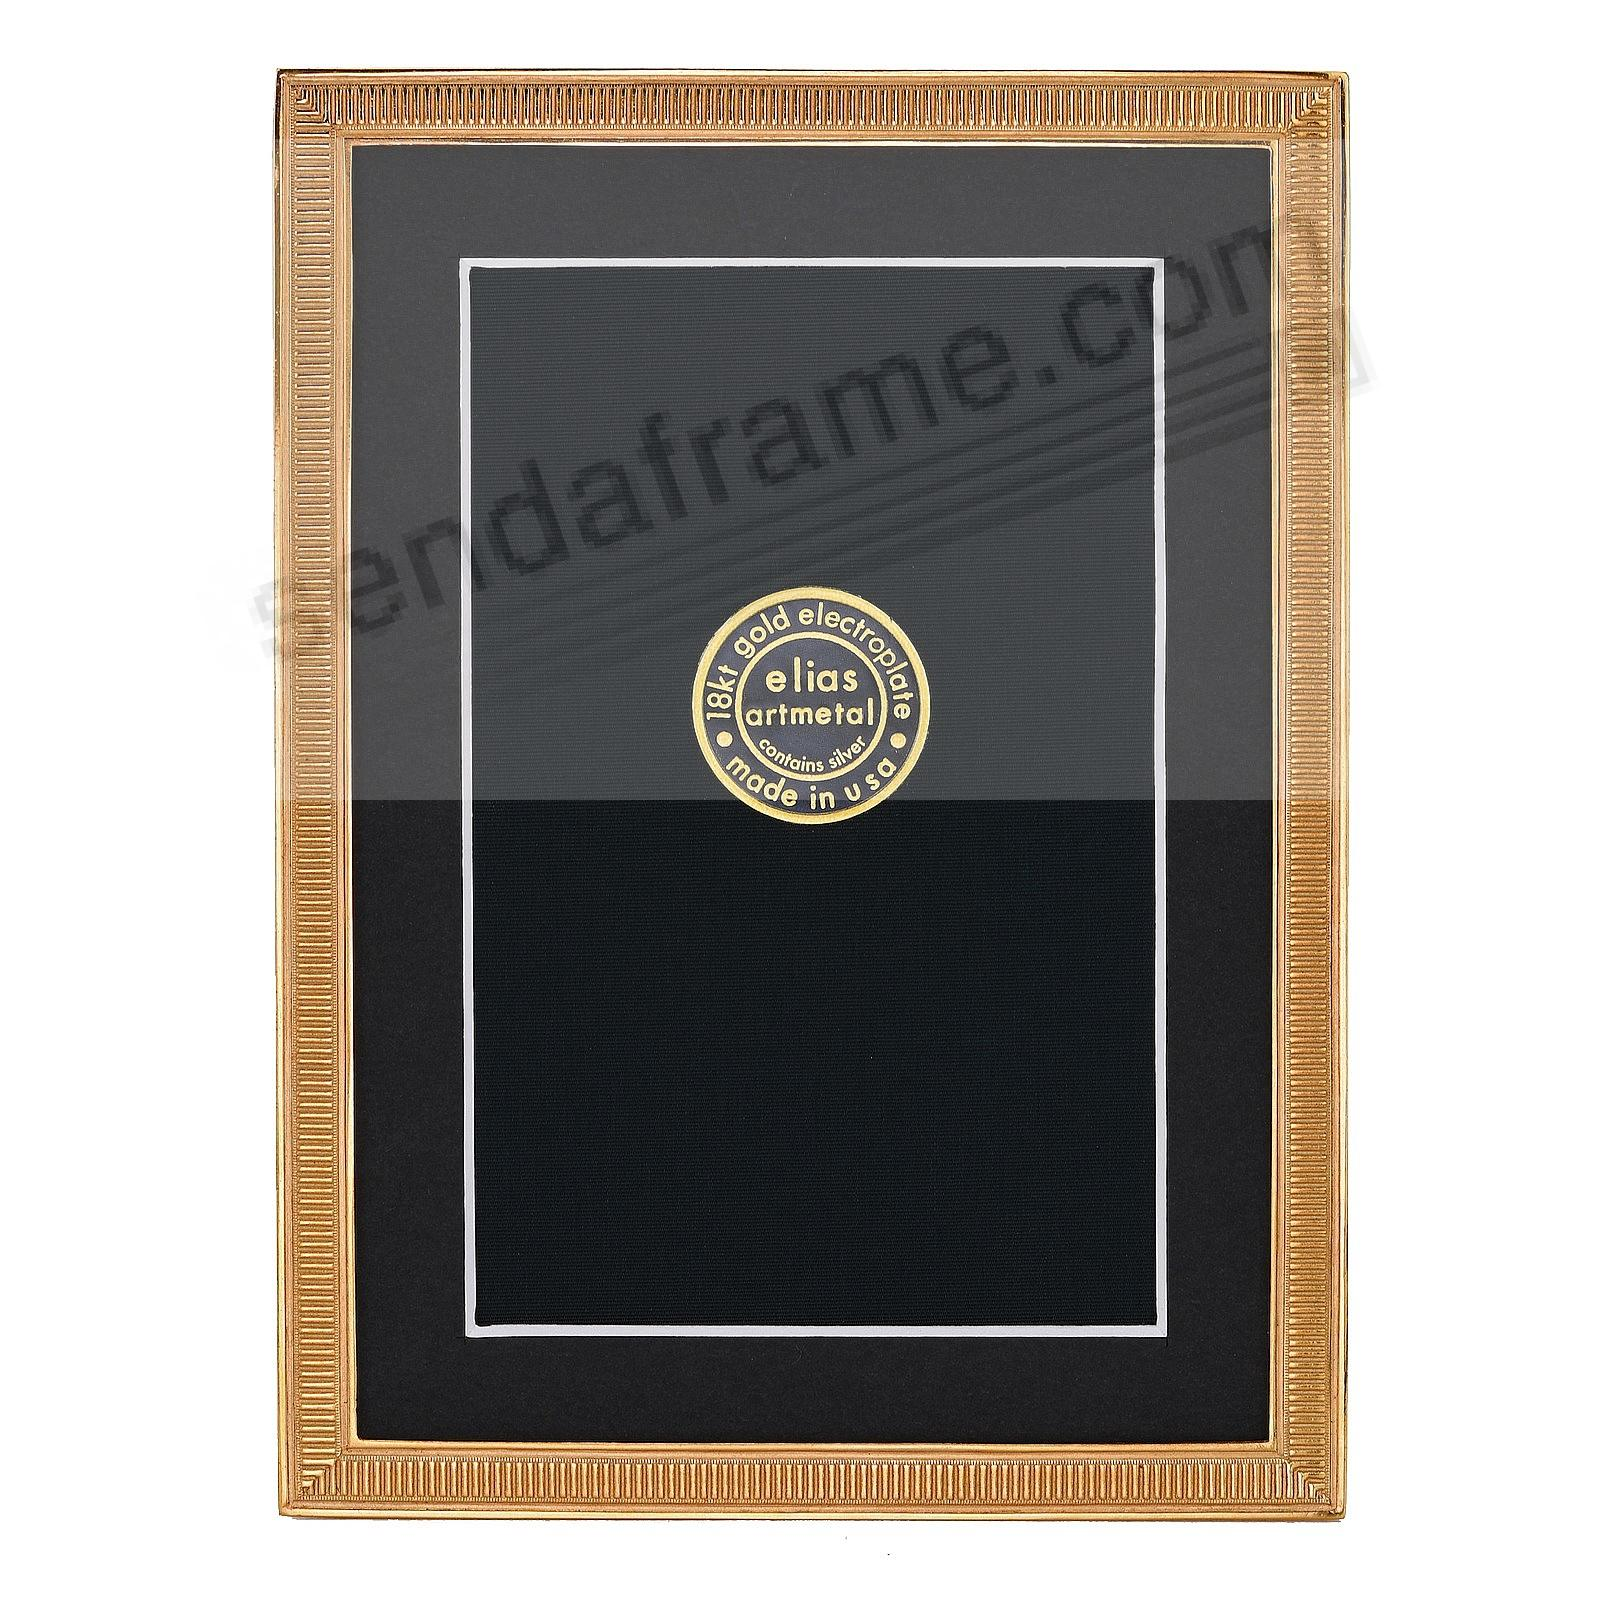 LINE BY LINE 18kt Museum Gold over Fine Pewter frame 5x7/4x6 by Elias Artmetal®